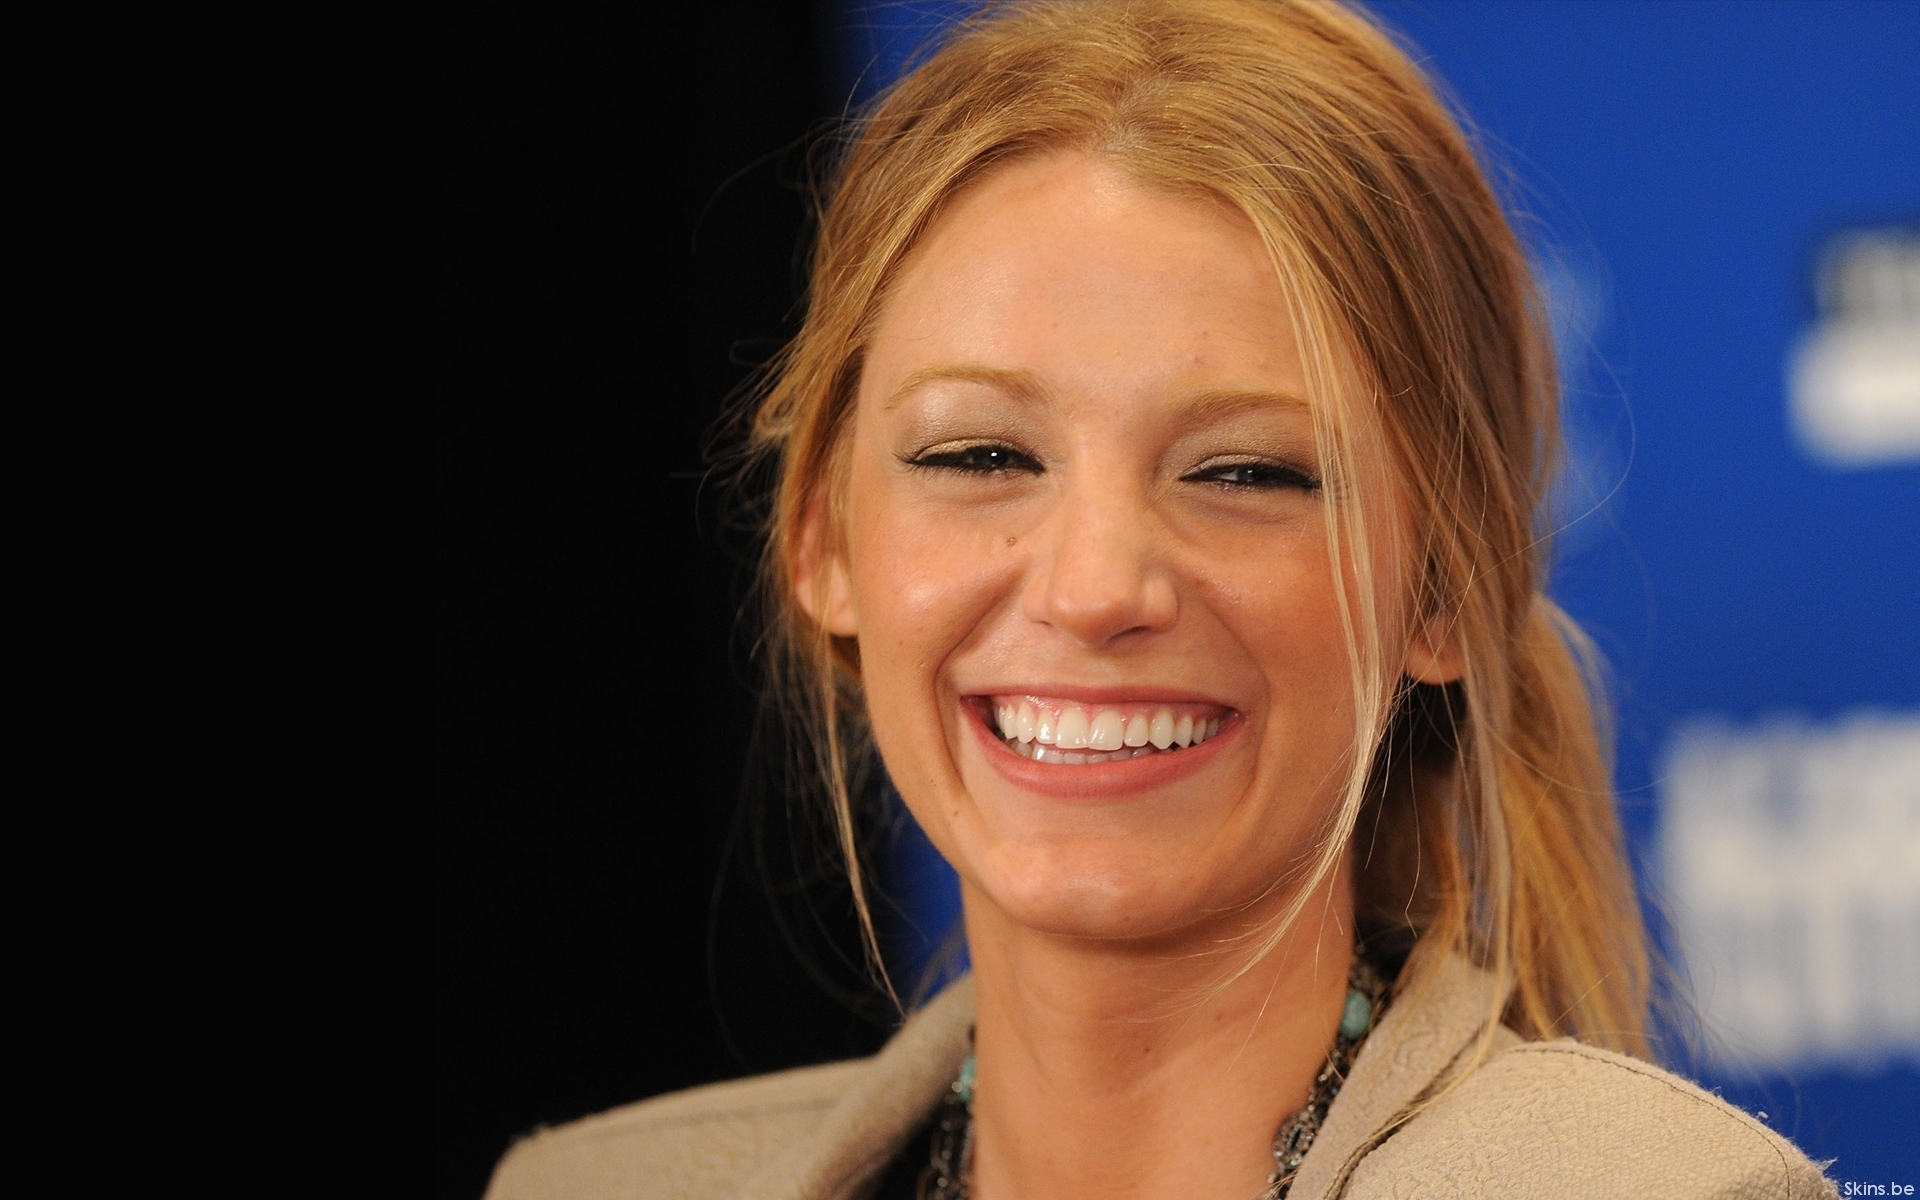 Blake Lively Wallpapers Hd